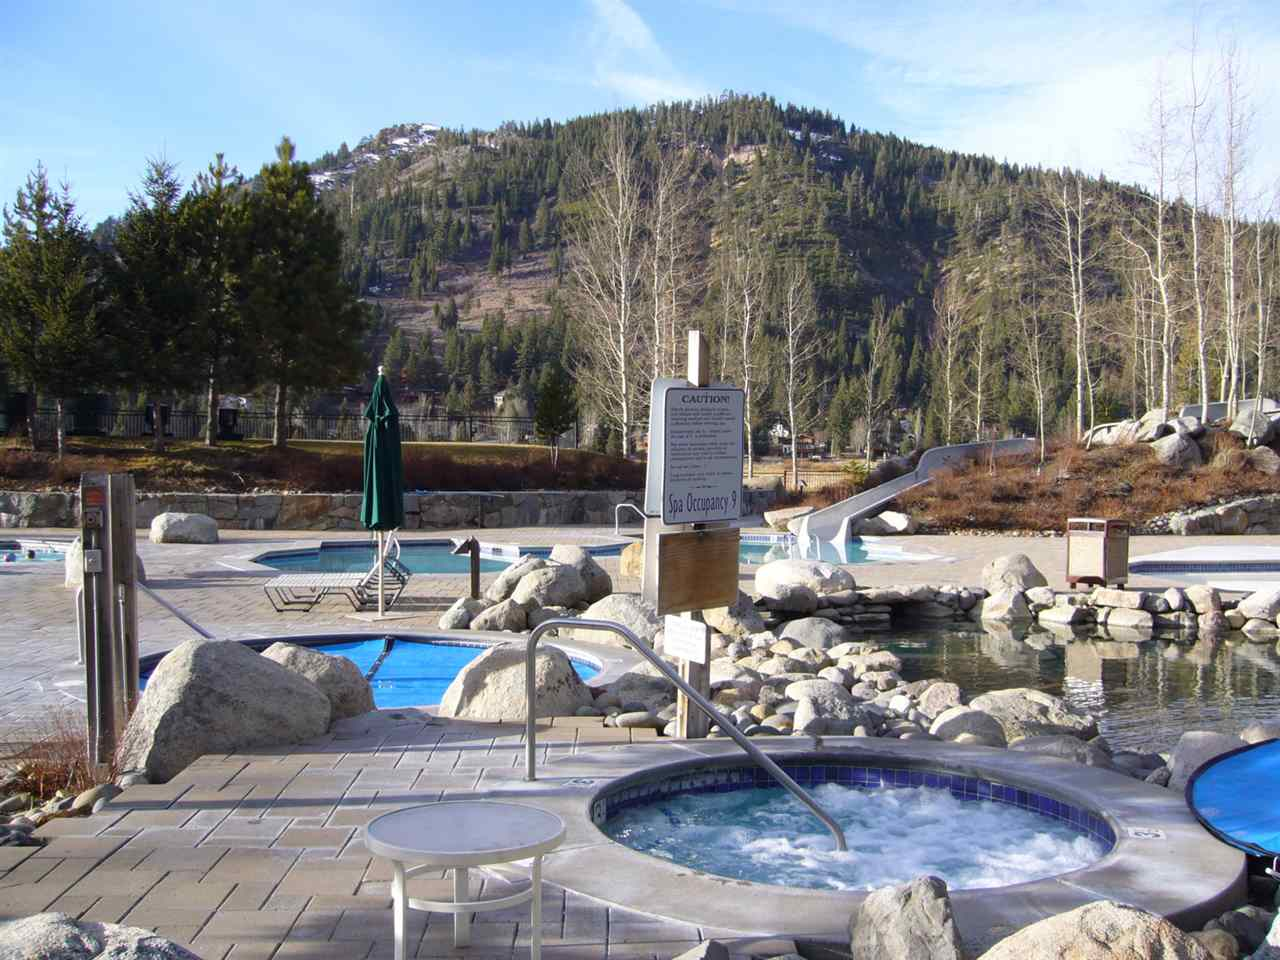 400 Squaw Creek Road 517 519, Olympic Valley, CA 96146